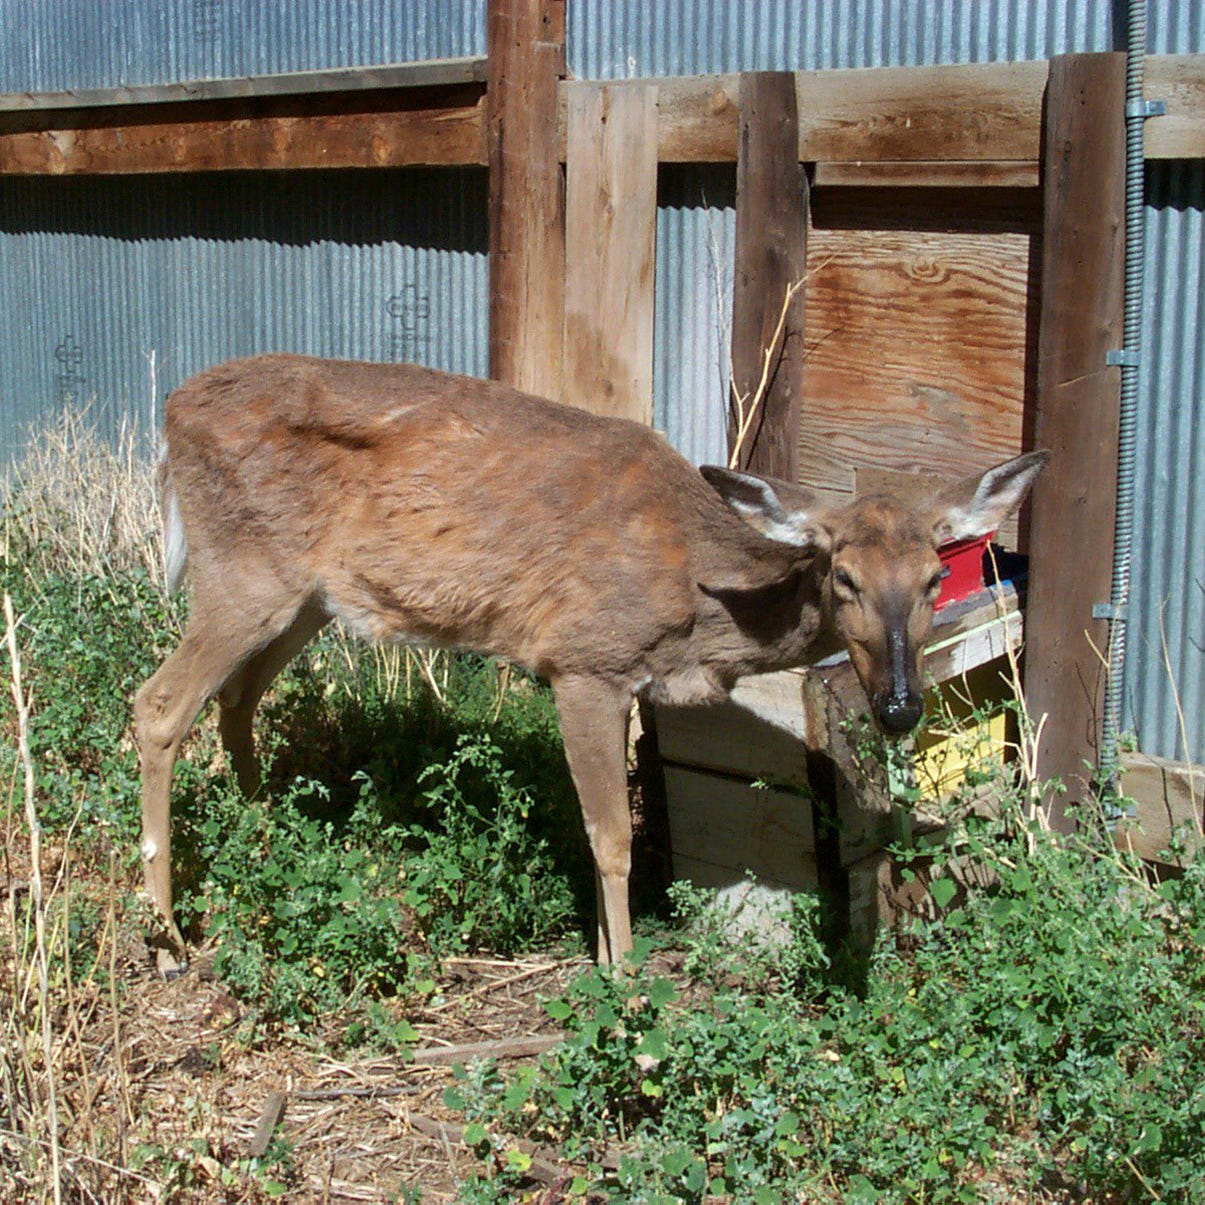 More cases of CWD found: Here's what we know.